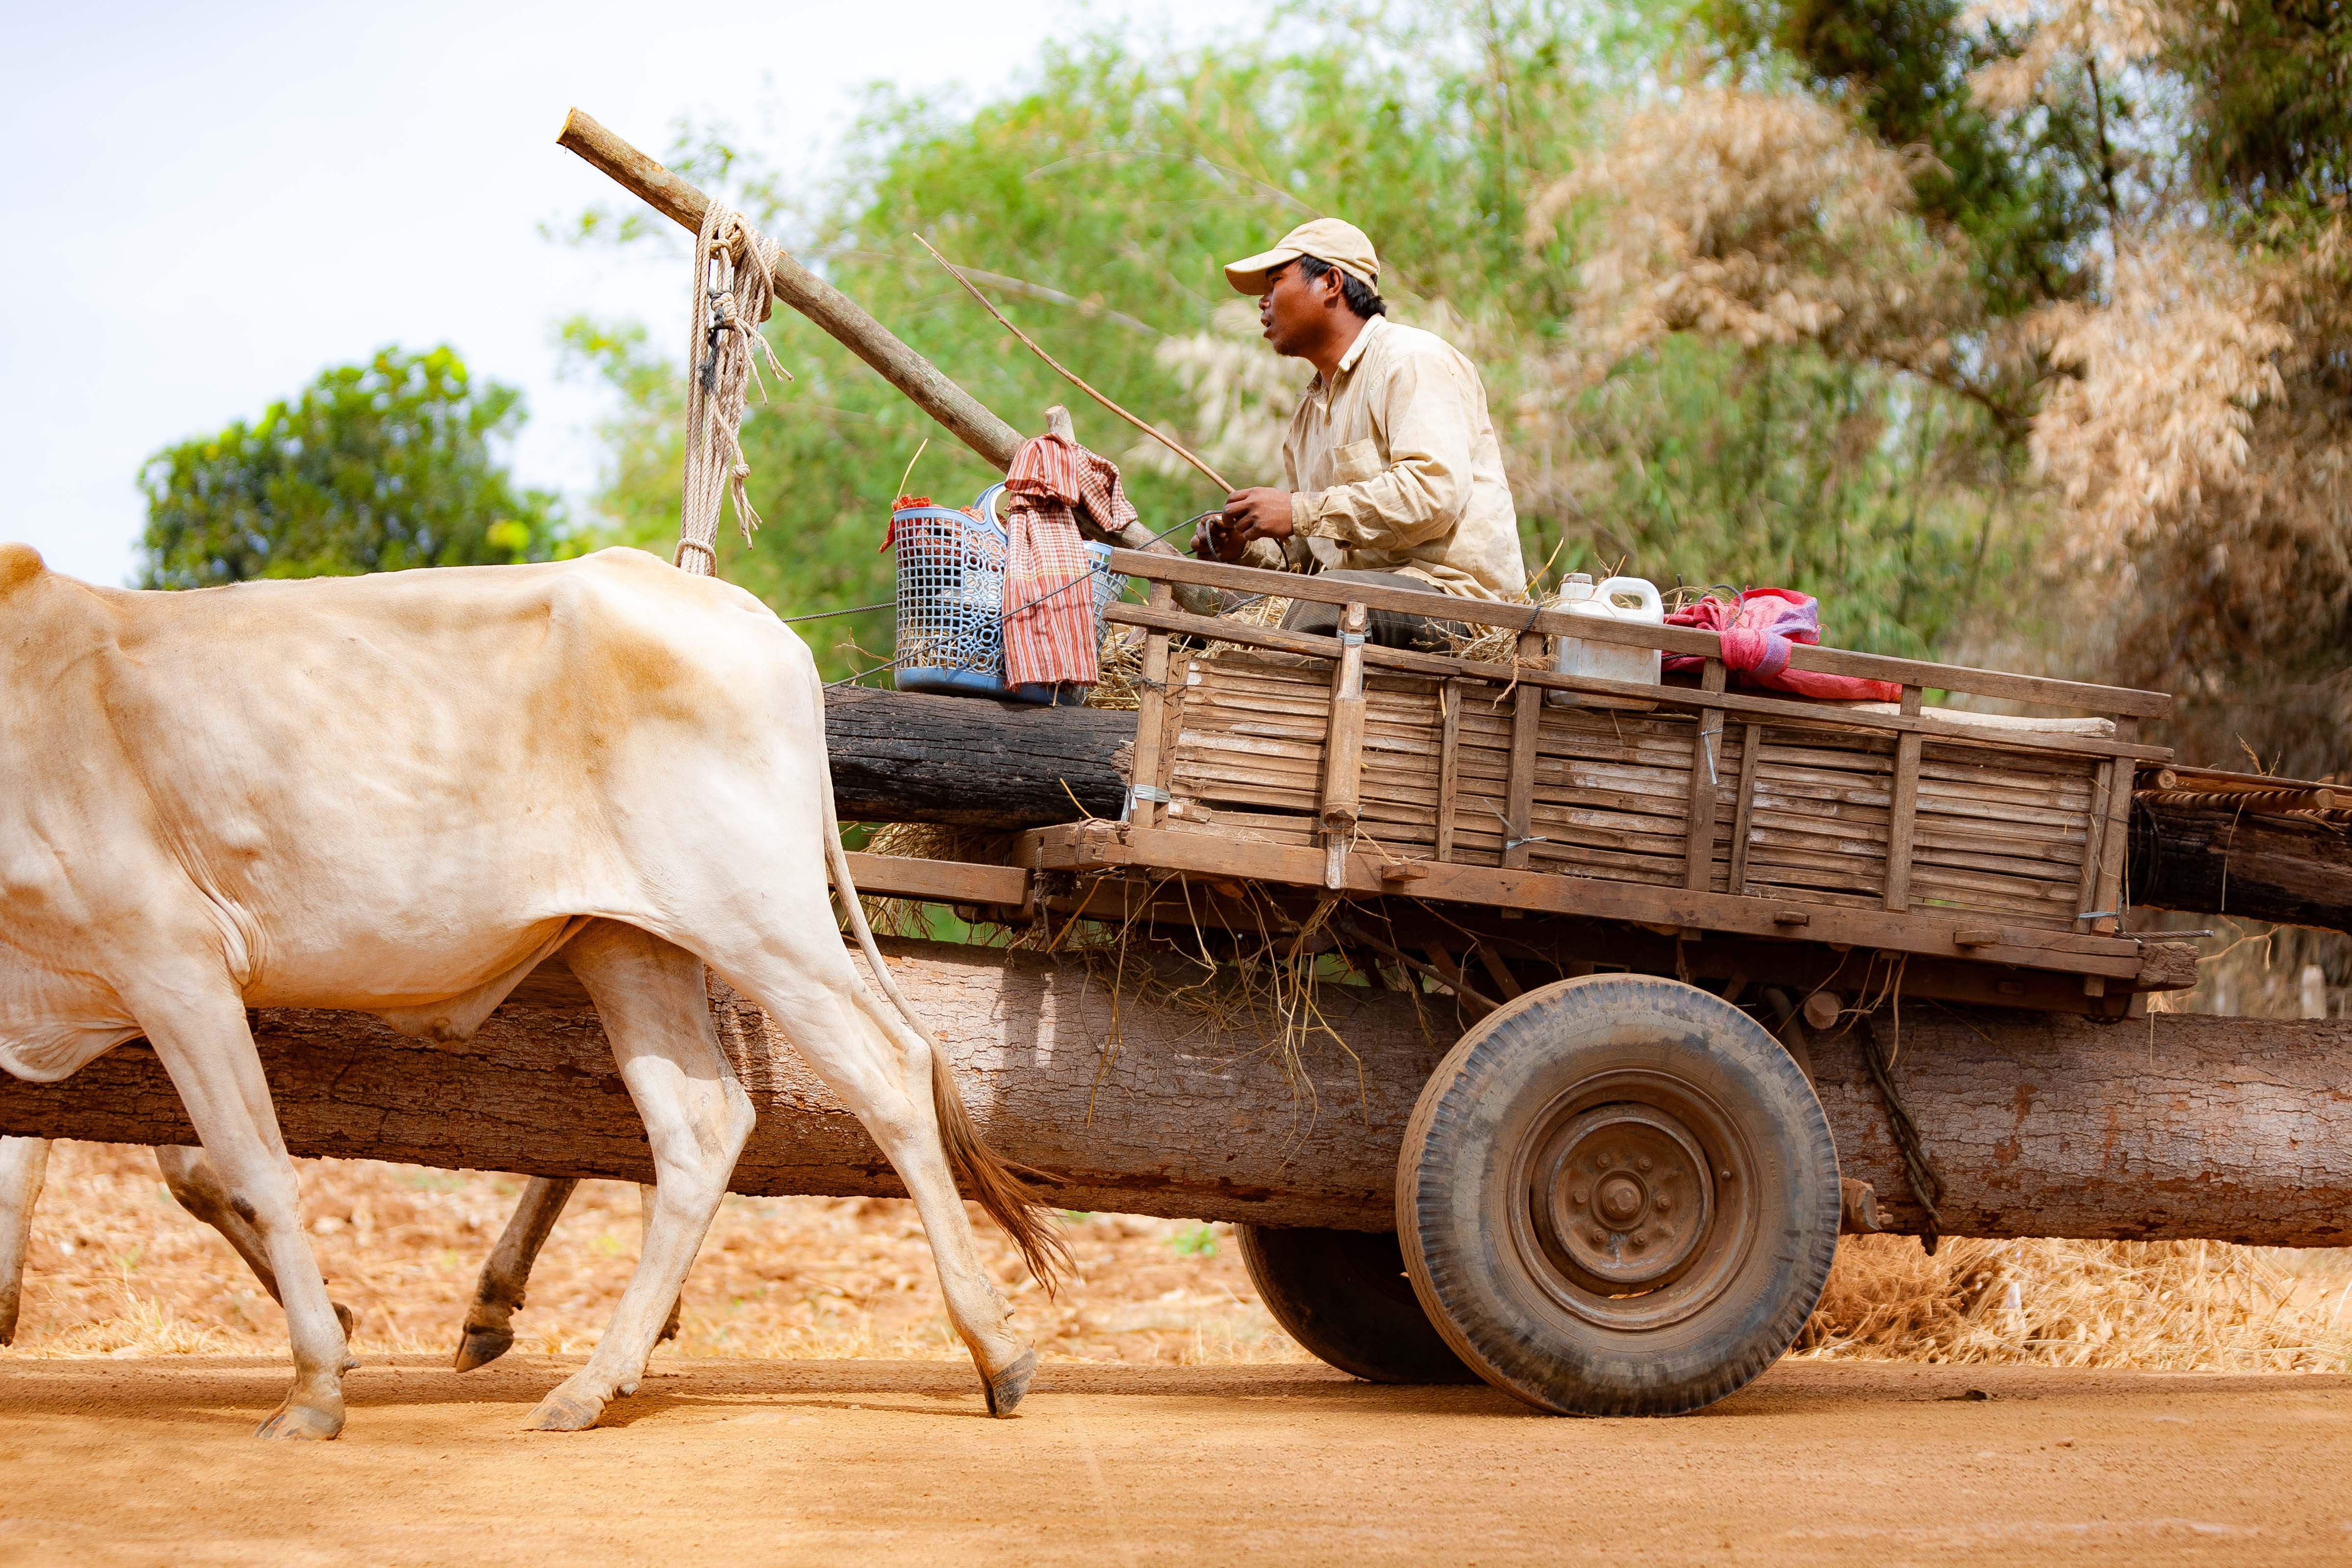 Cambodia, Kampong Chaam Prov, Cow Drawn Logging Cart, 2010, IMG 5423